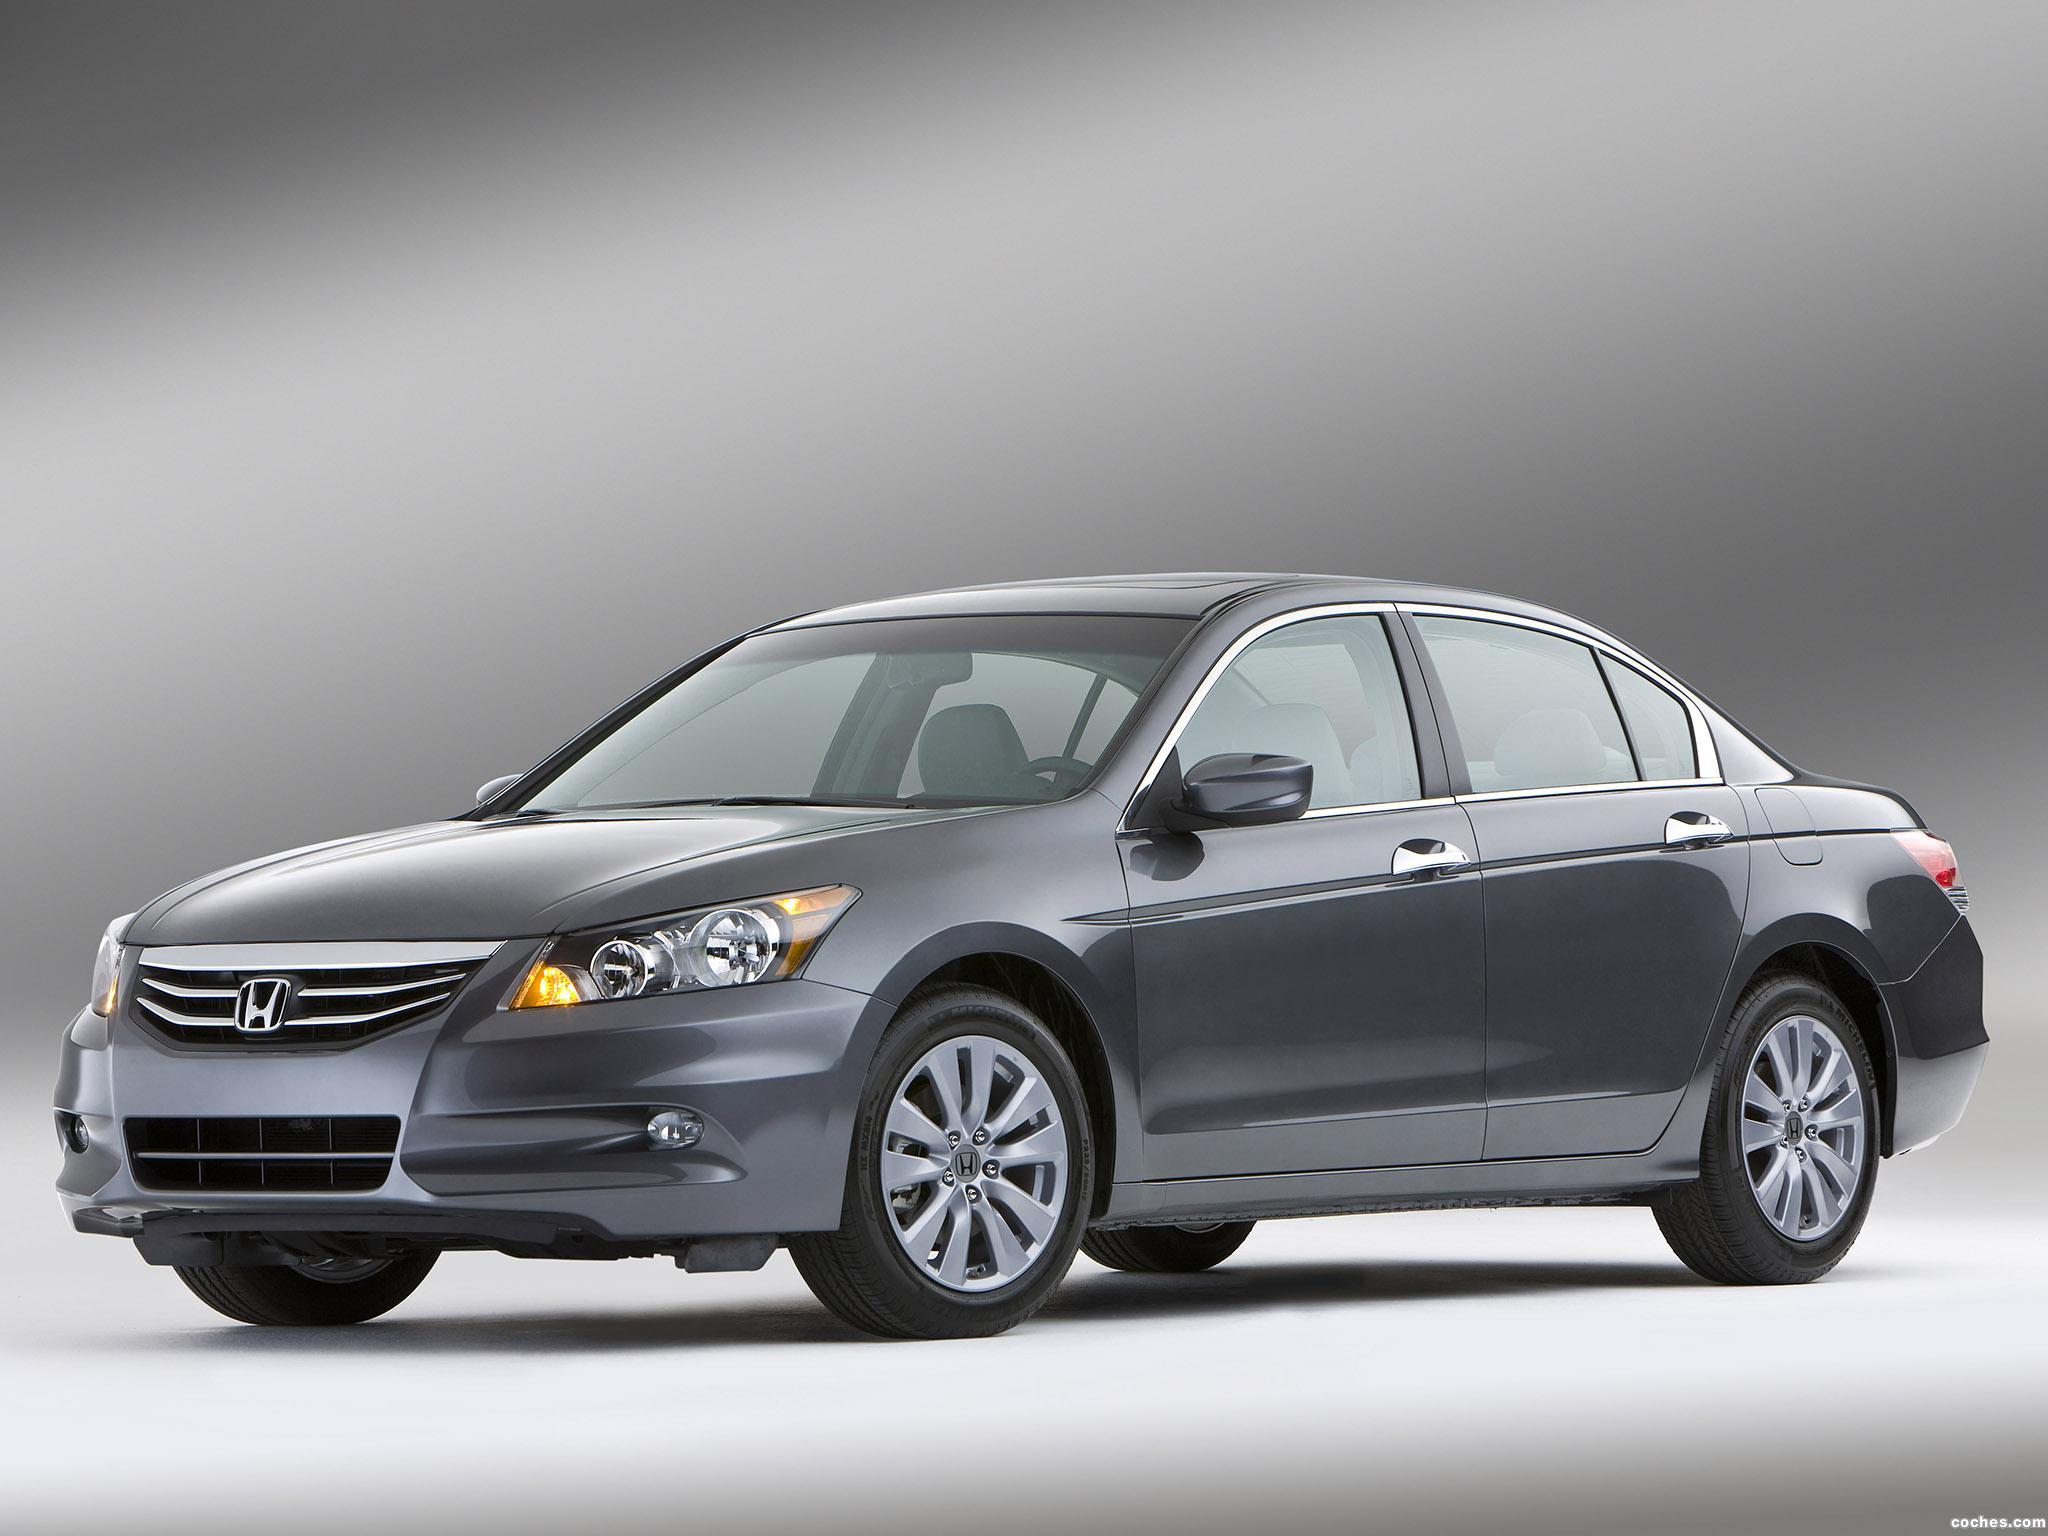 Foto 0 de Honda Accord Sedan USA 2010